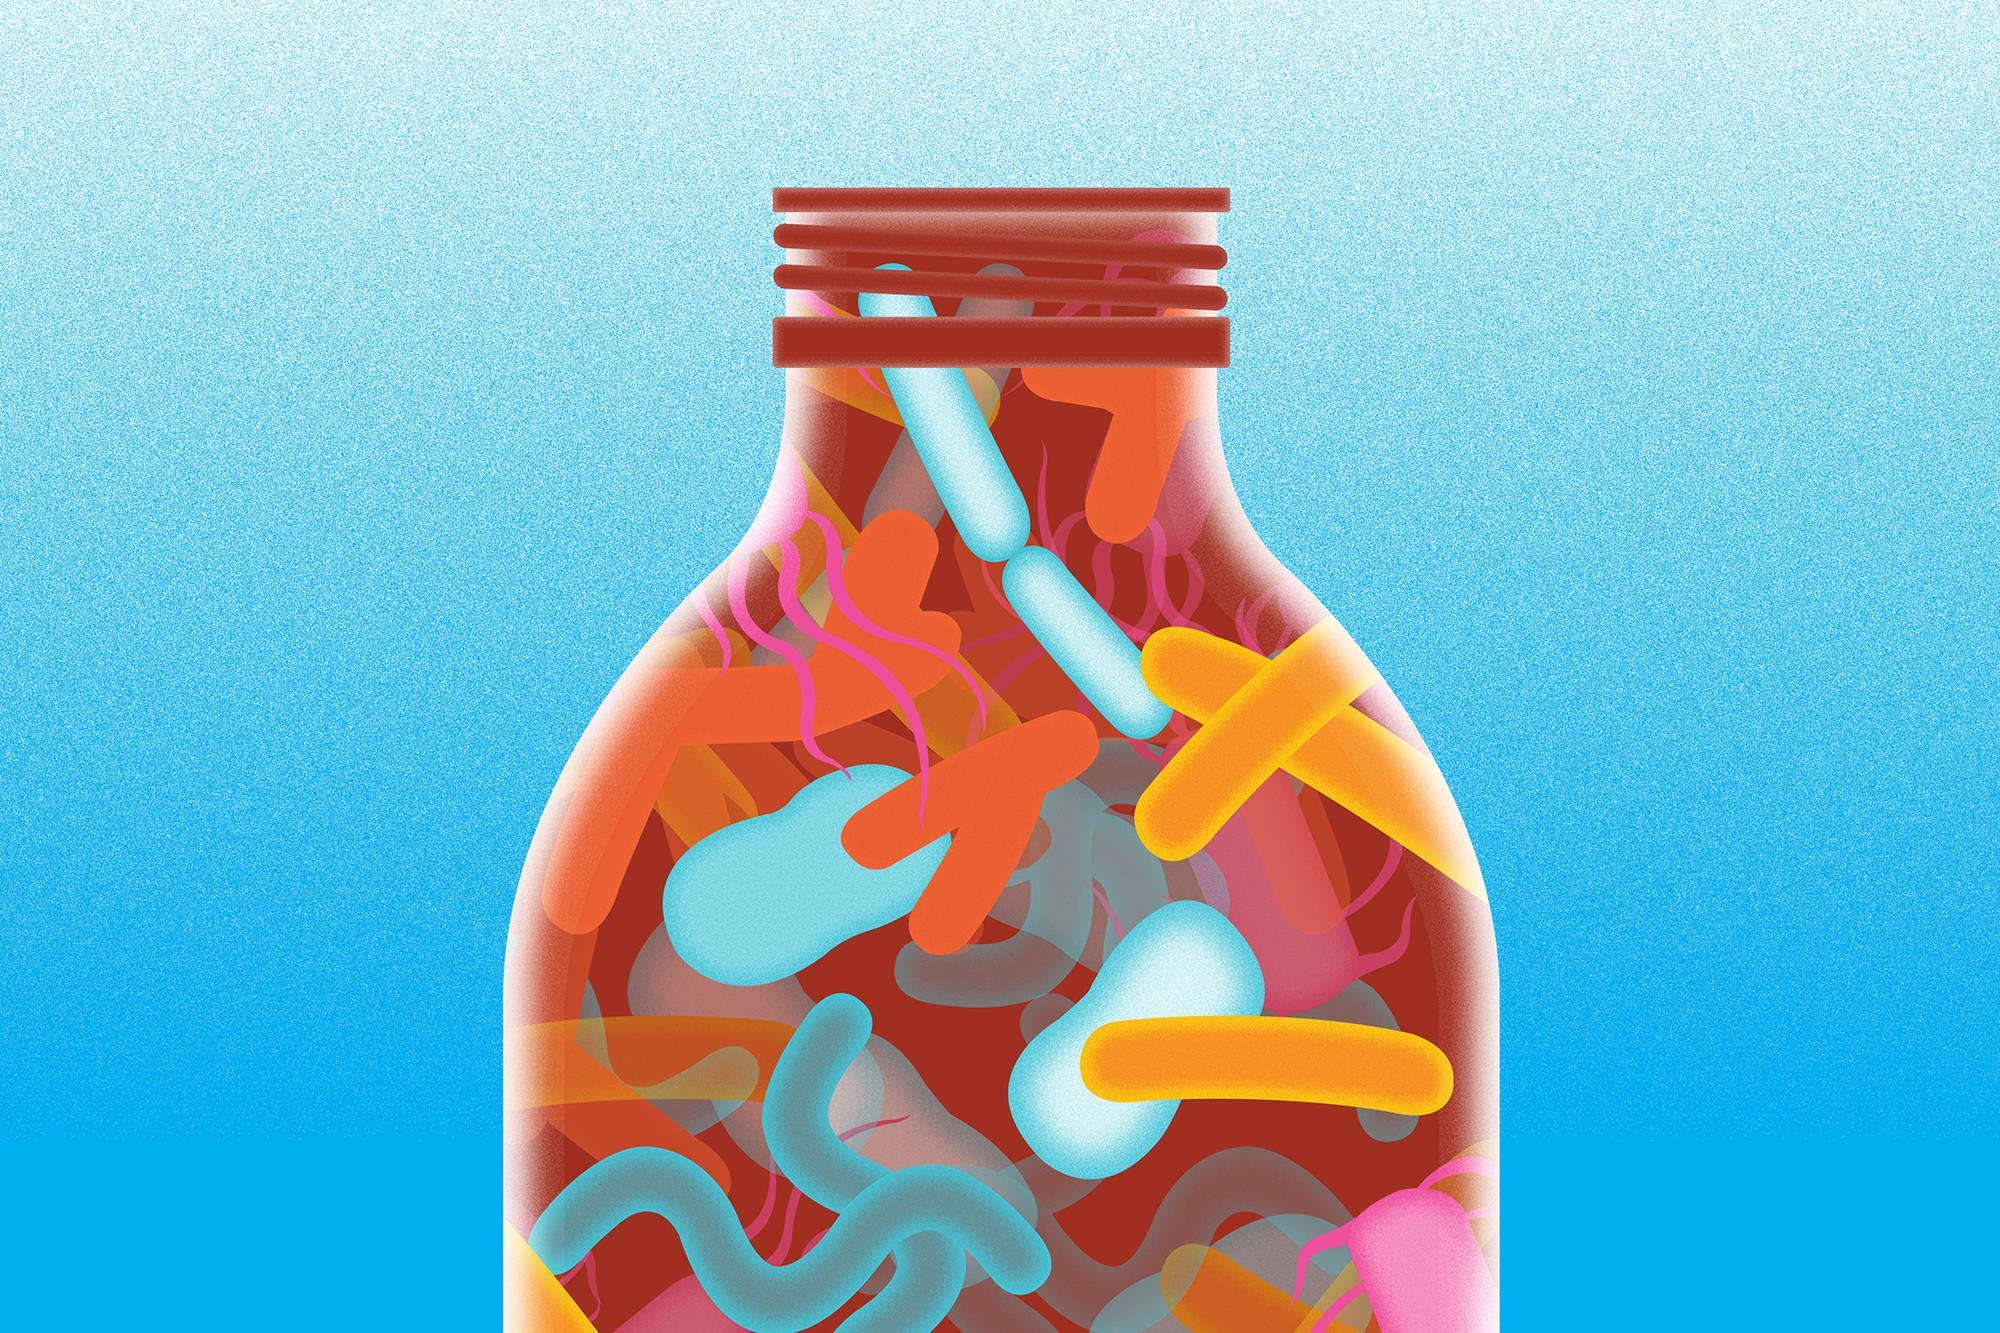 Drugging the gut microbiome